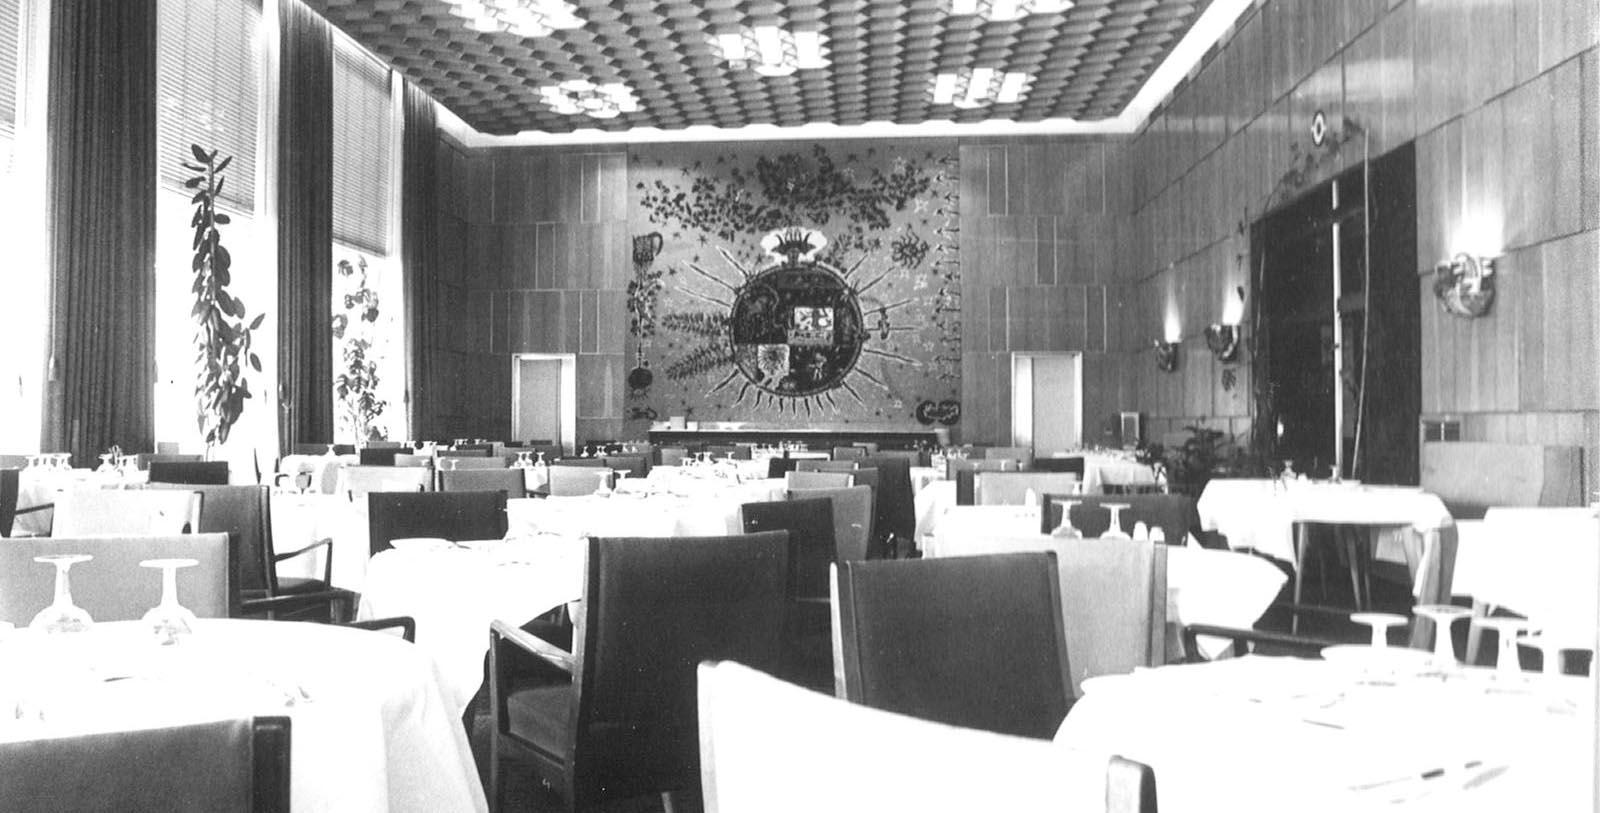 Historic Image of Meeting Room at Tivoli Avenida Liberdade Lisboa, 1933, Member of Historic Hotels Worldwide, in Lisbon, Portugal, Discover